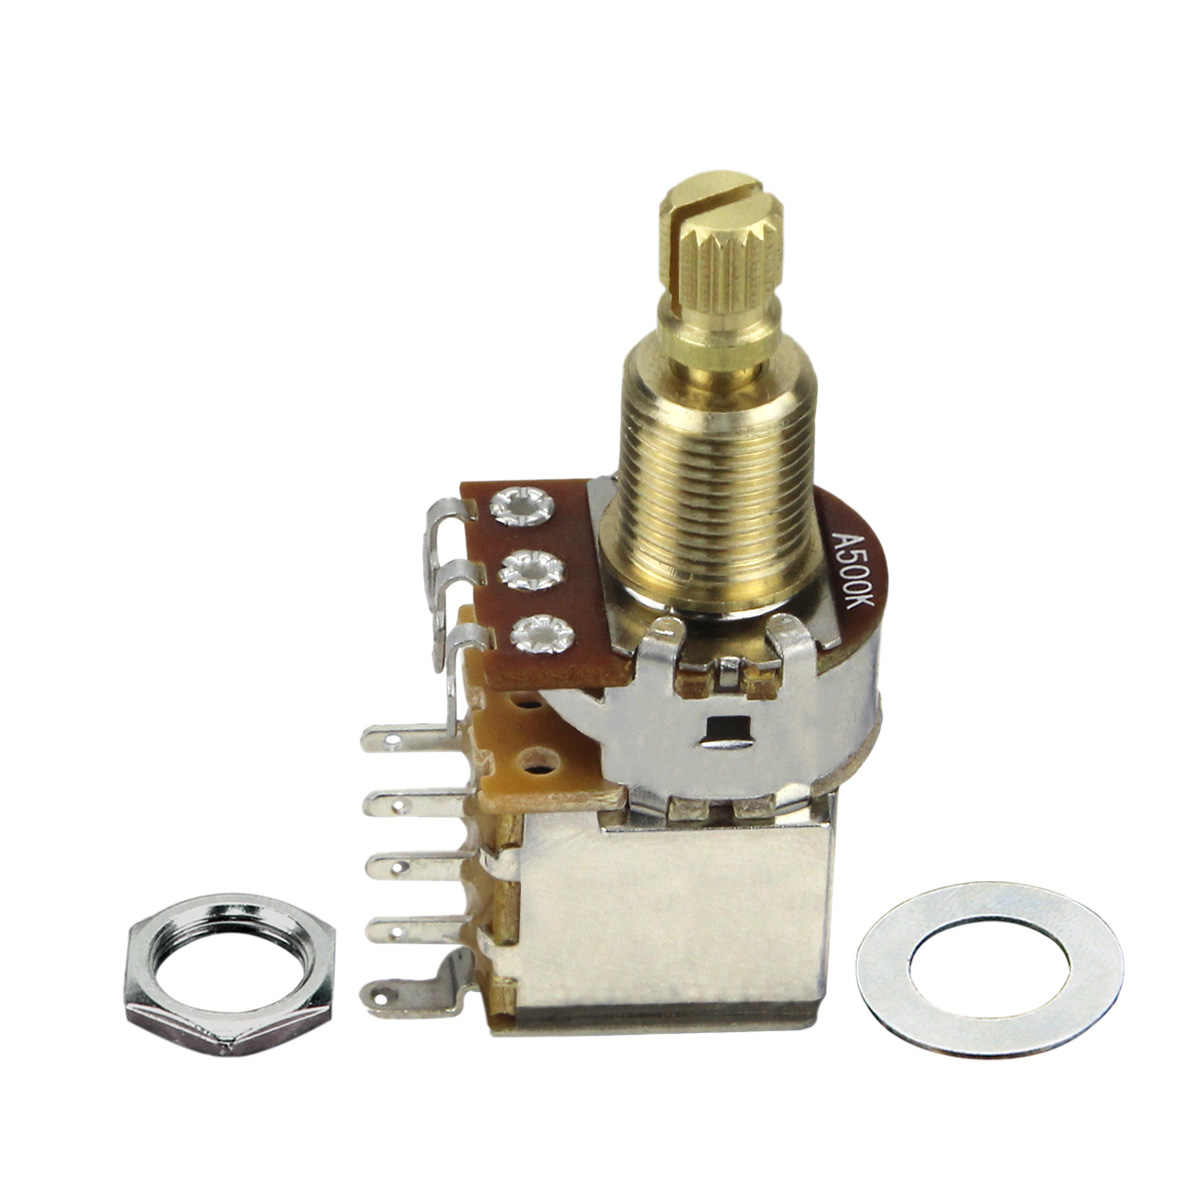 FLEOR guitare basse Audio cône A500K pousser potentiomètre & DPDT interrupteur cuivre Long Split arbre Pot